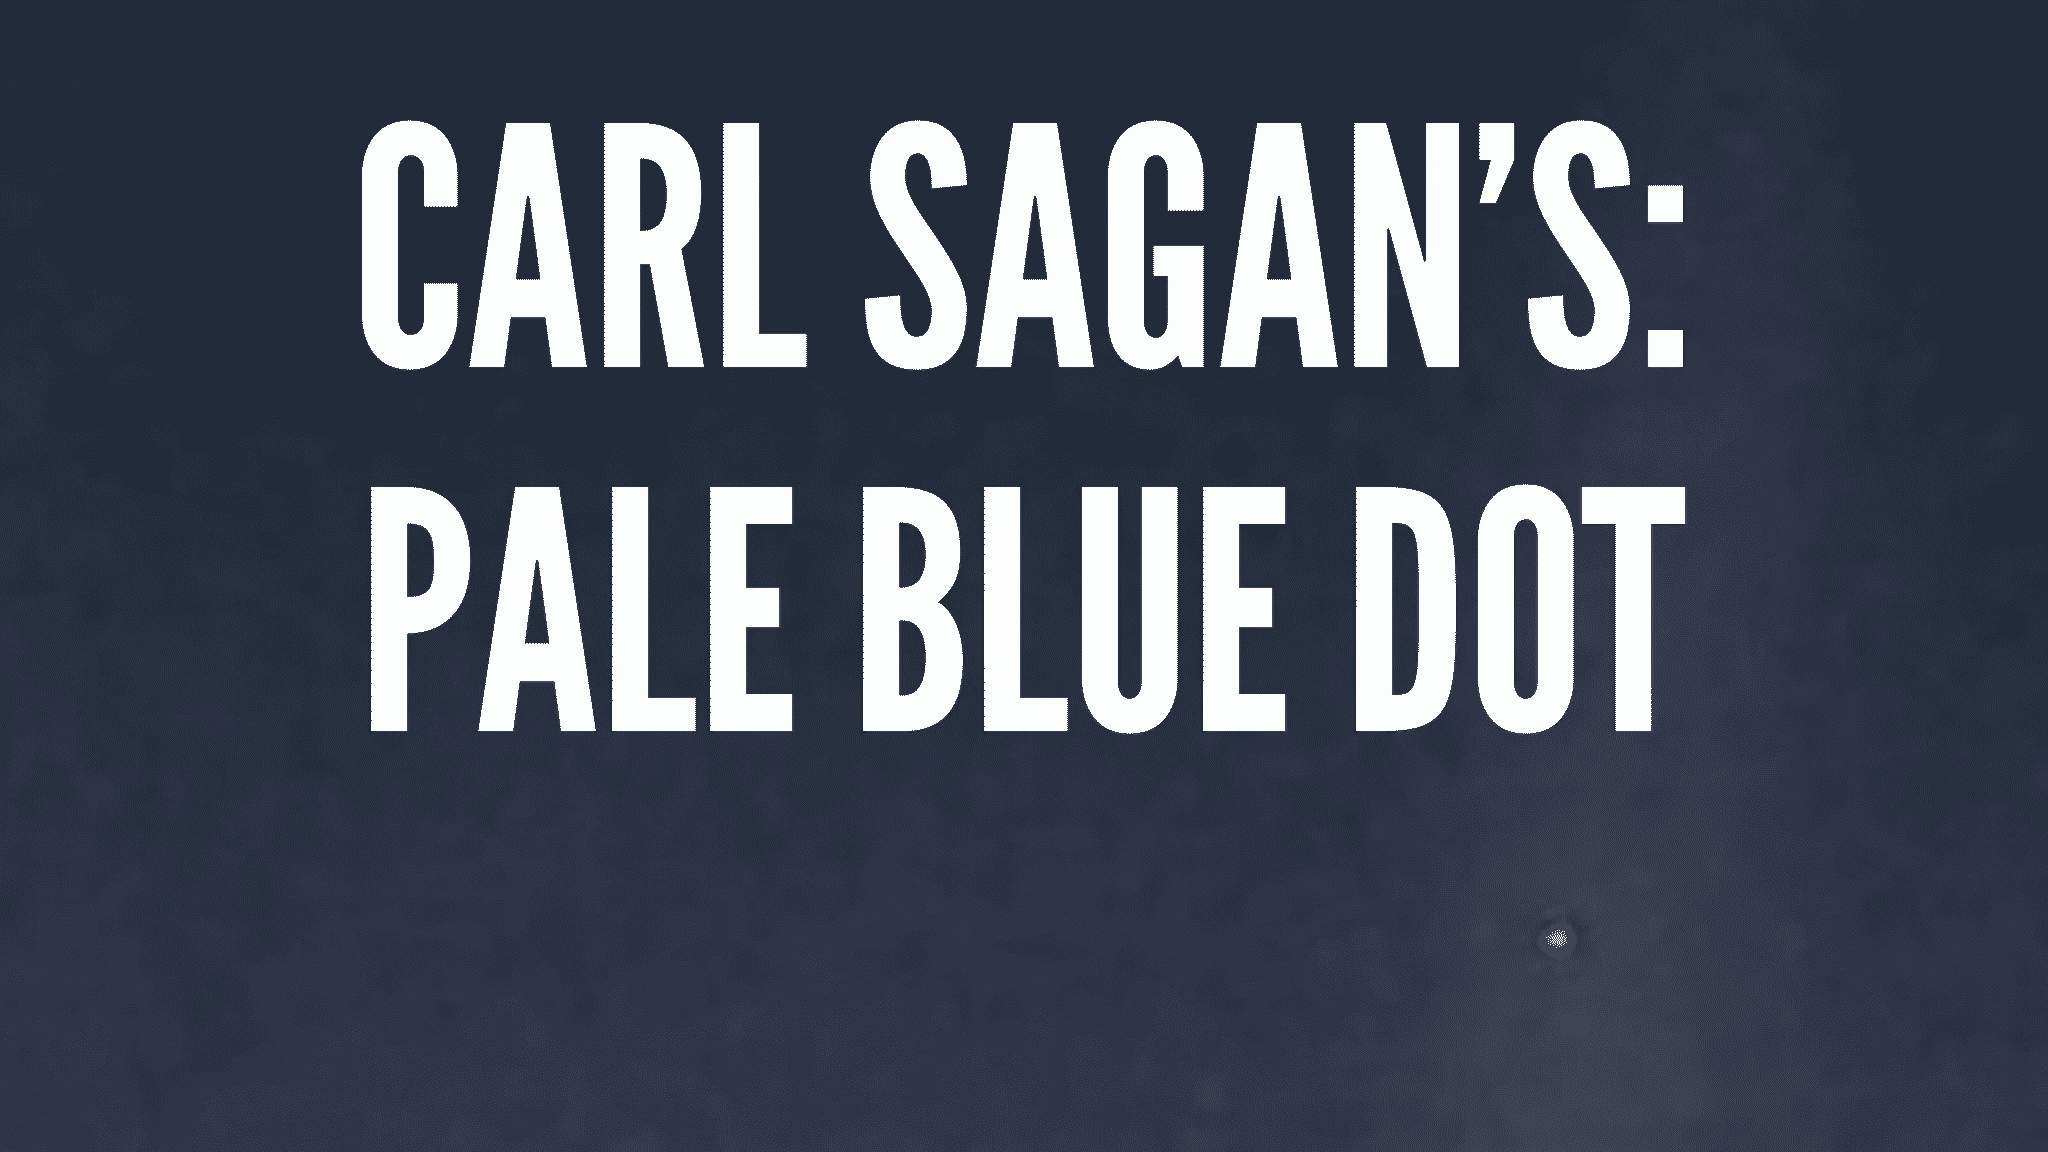 Carl Sagan's A Pale Blue Dot